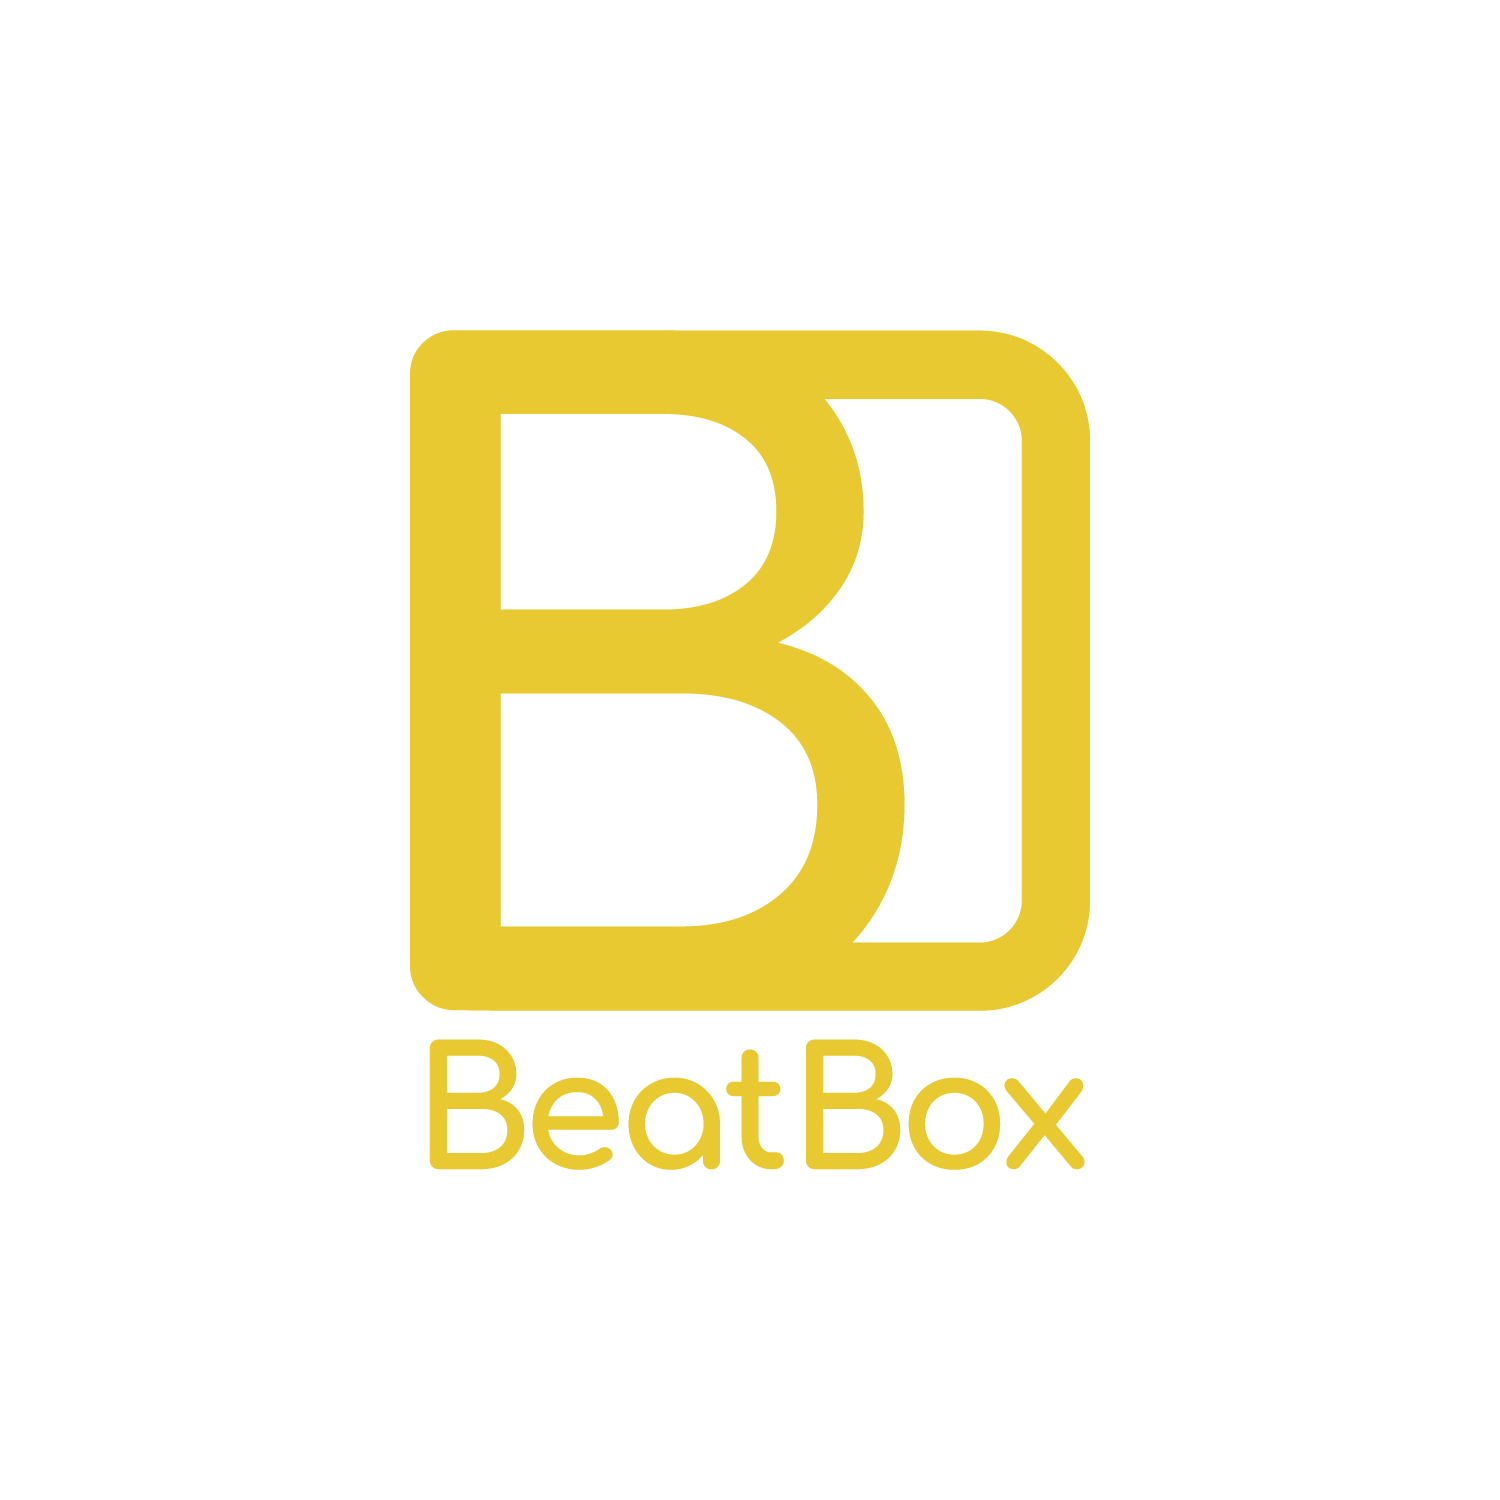 Beatbox Logo Preview-01.png